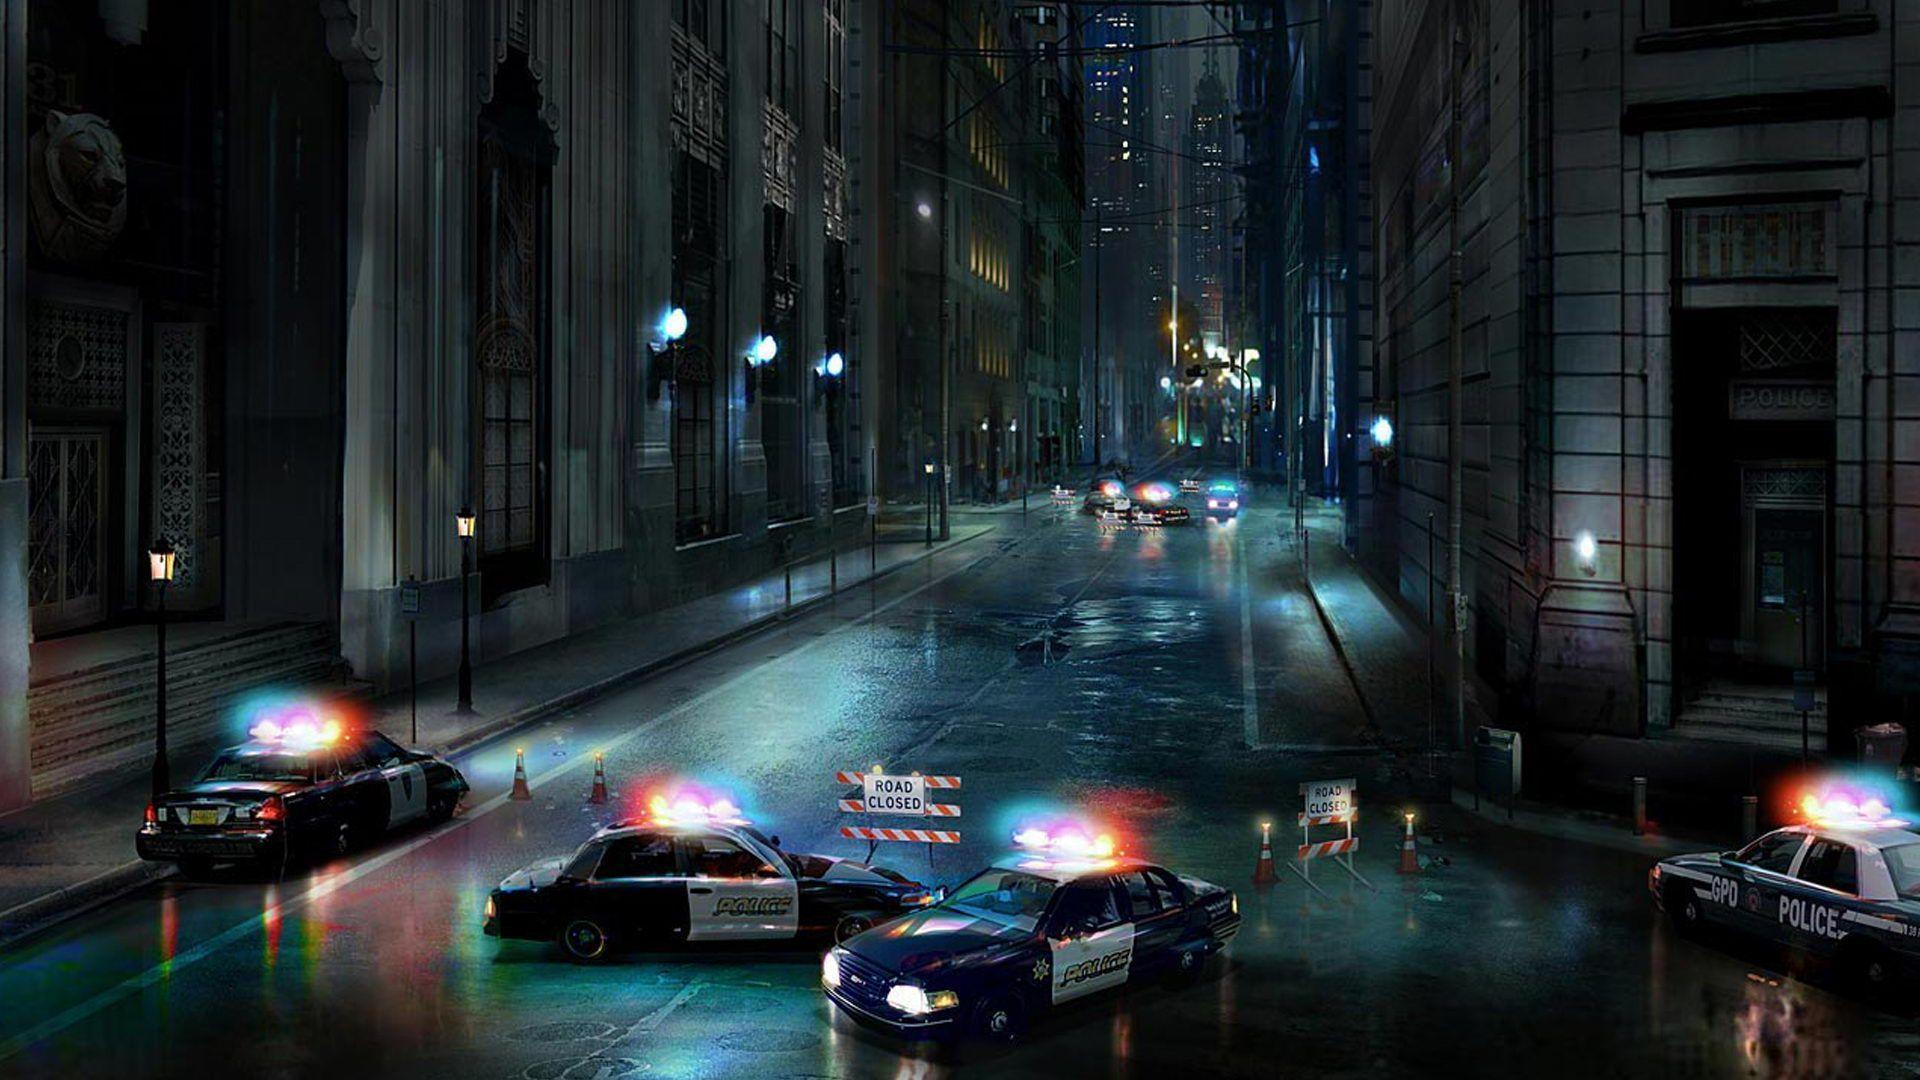 Wallpapers For > Gotham City Wallpaper Desktop